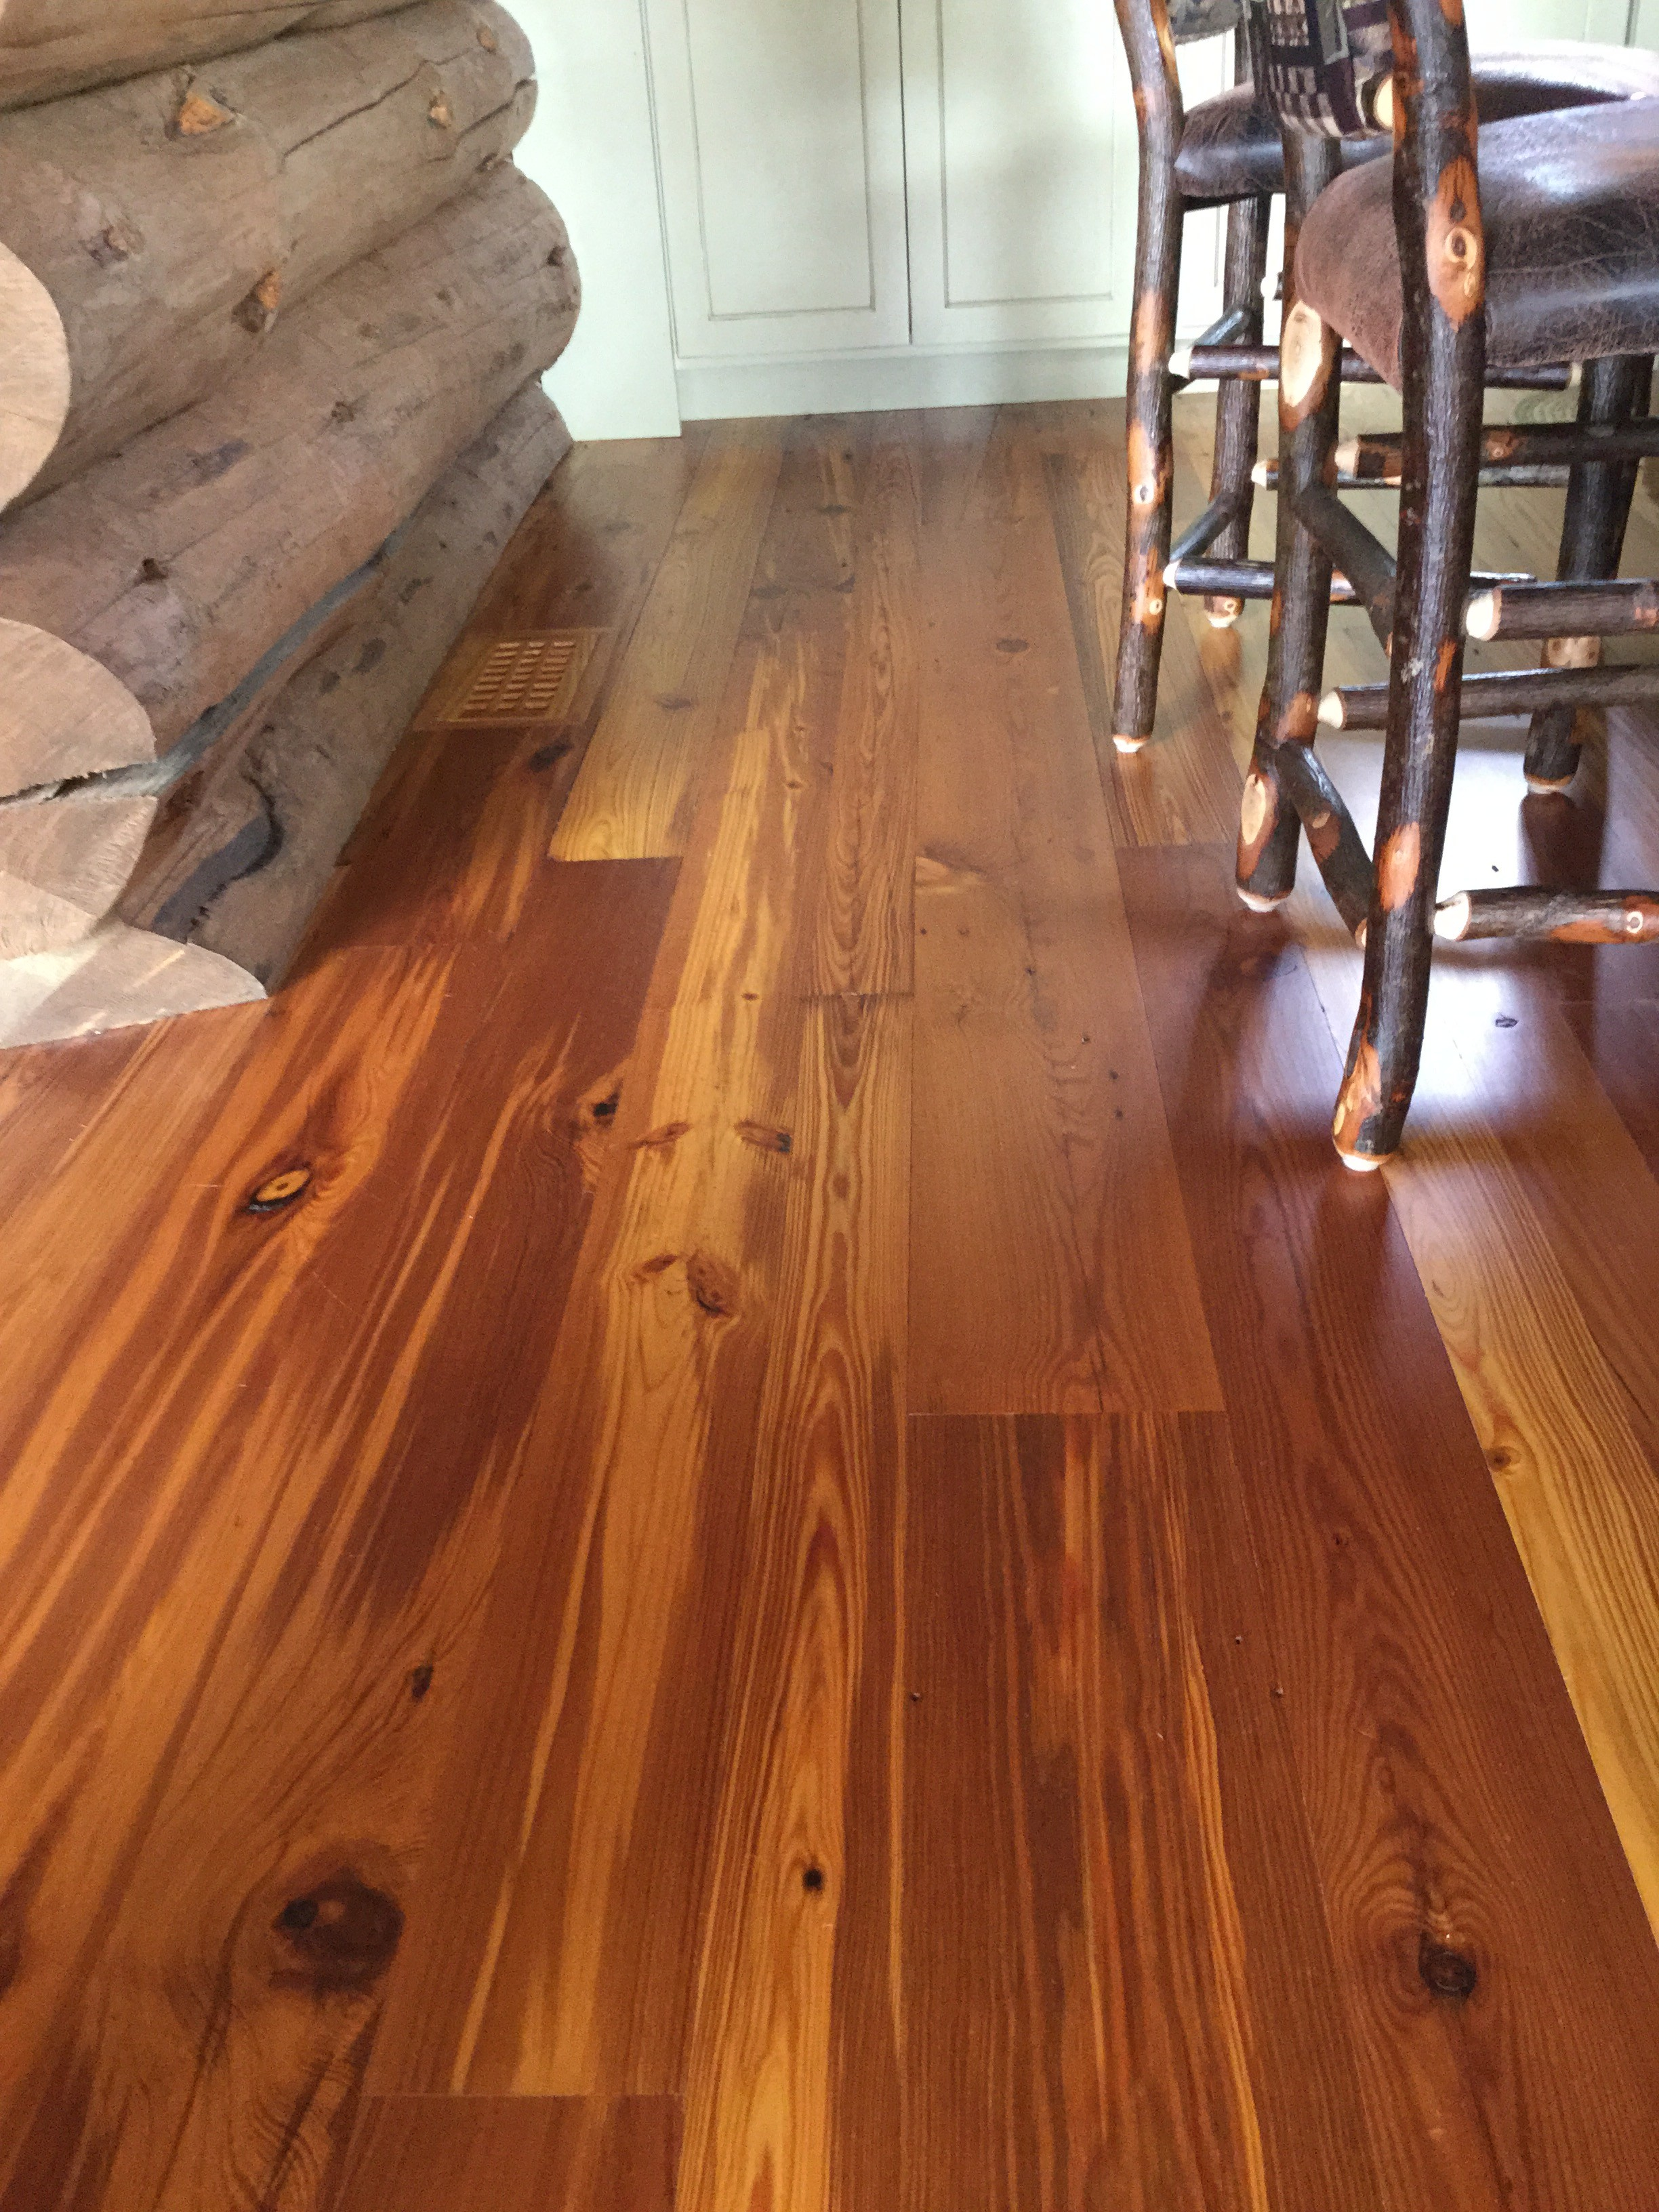 Reclaimed heart pine mill run floor in a residence in Newry, Maine sourced by Rousseau Reclaimed in South Portland, Maine